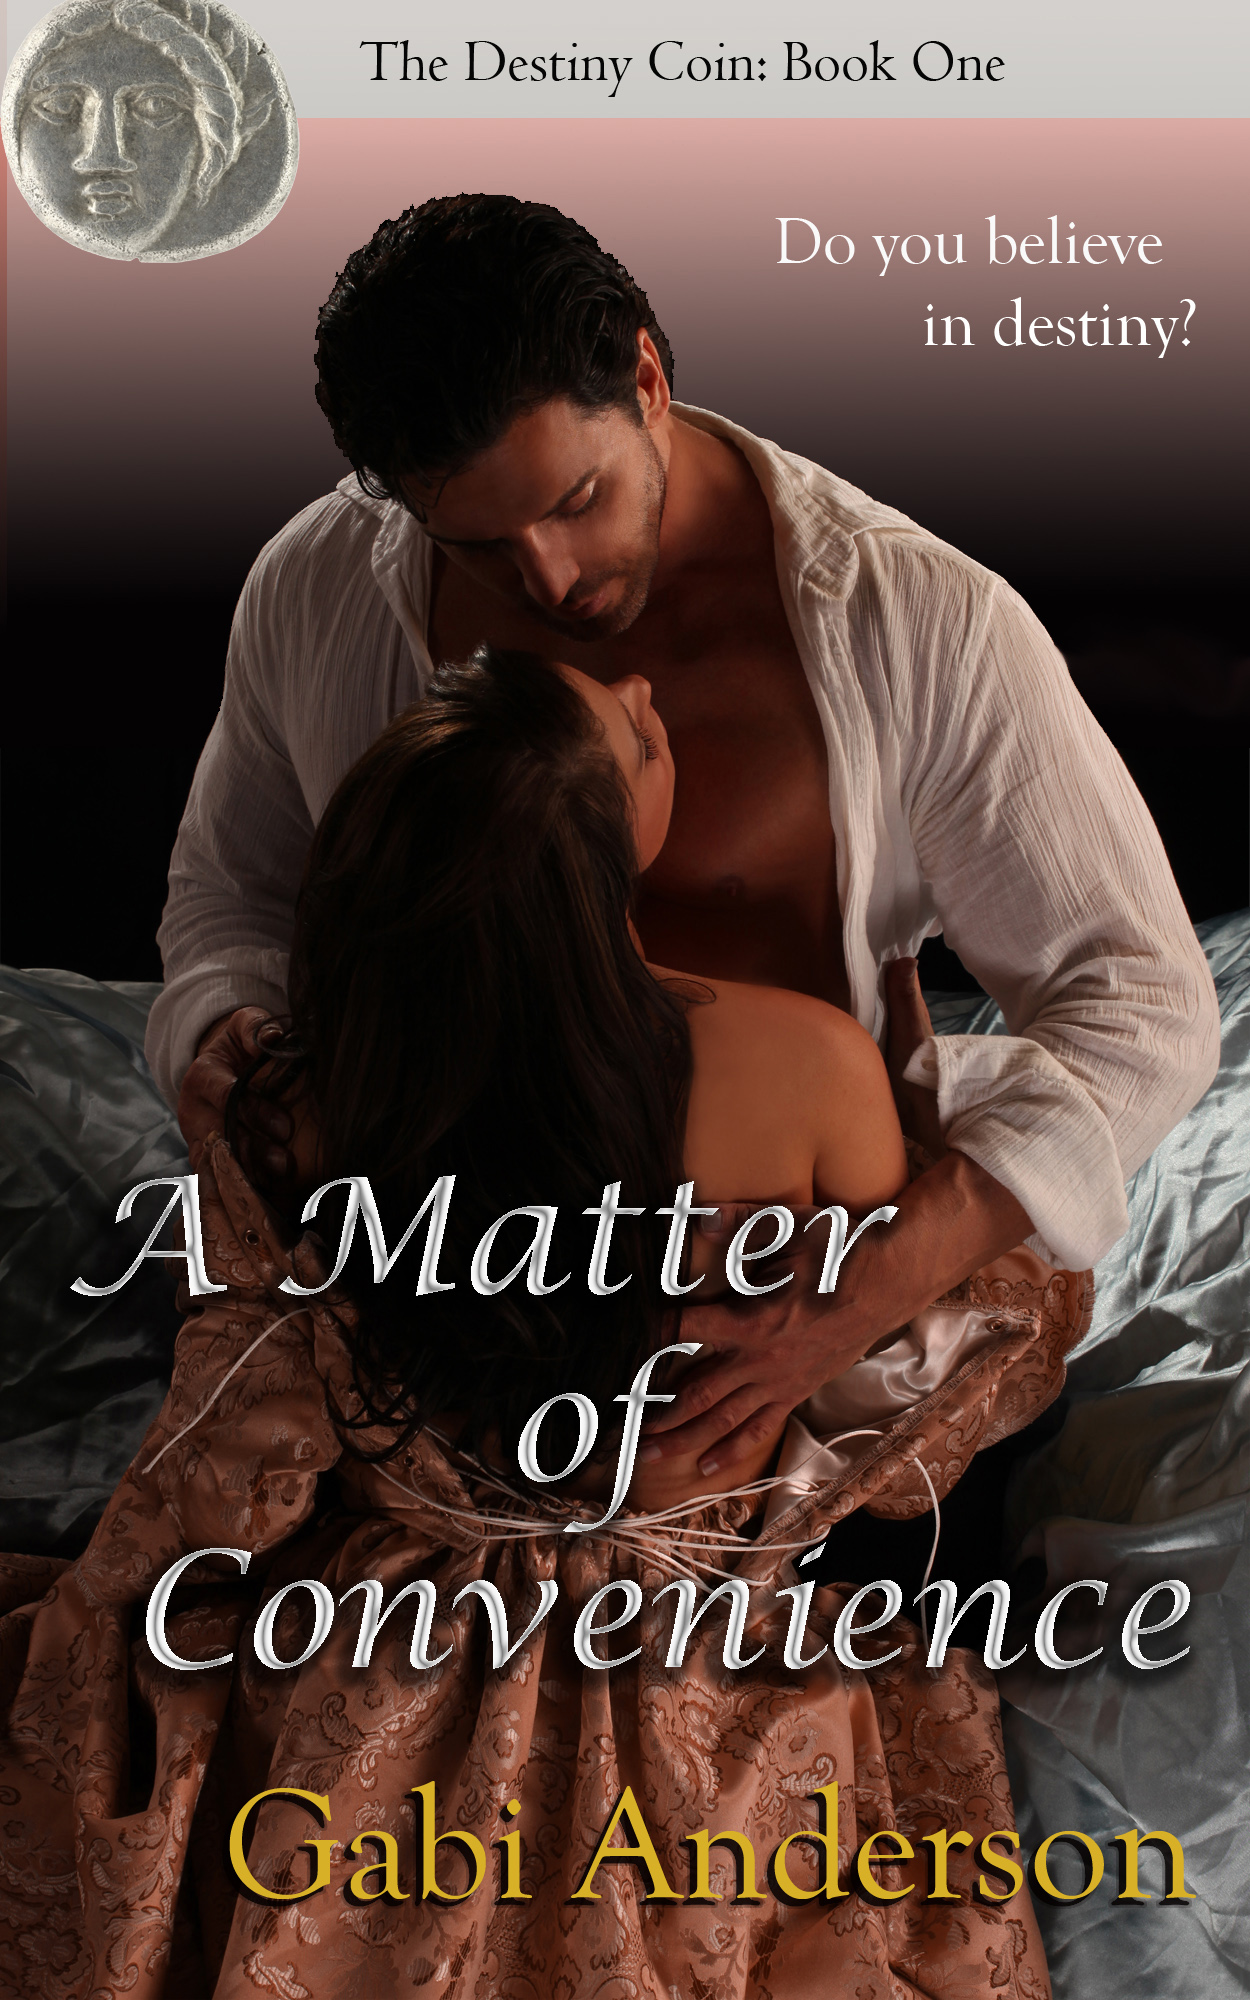 A Matter of Convenience--Book One in the Destiny Coin series